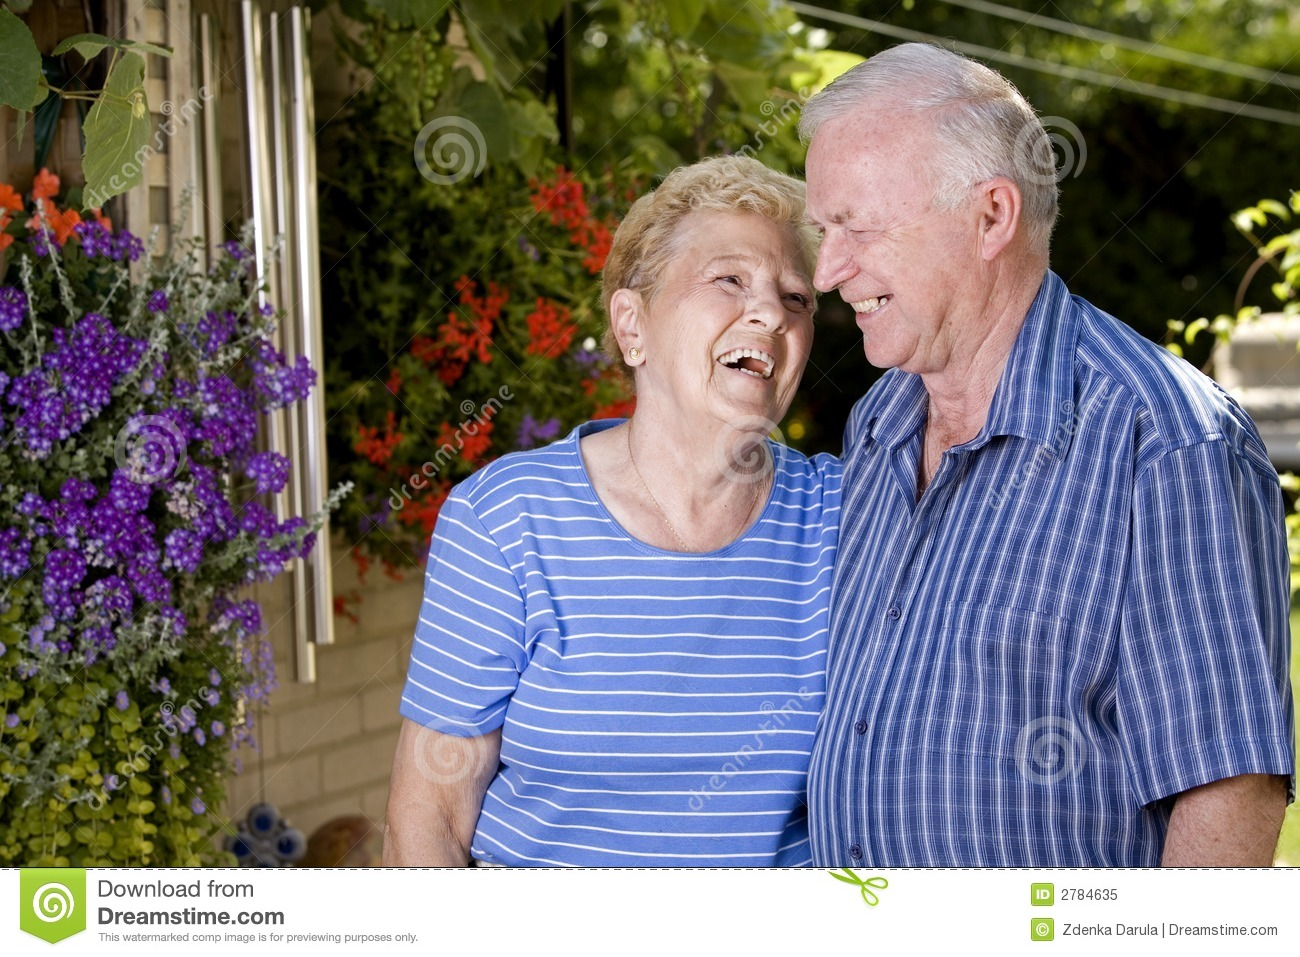 Happy grandparents in the summer looking at each other.